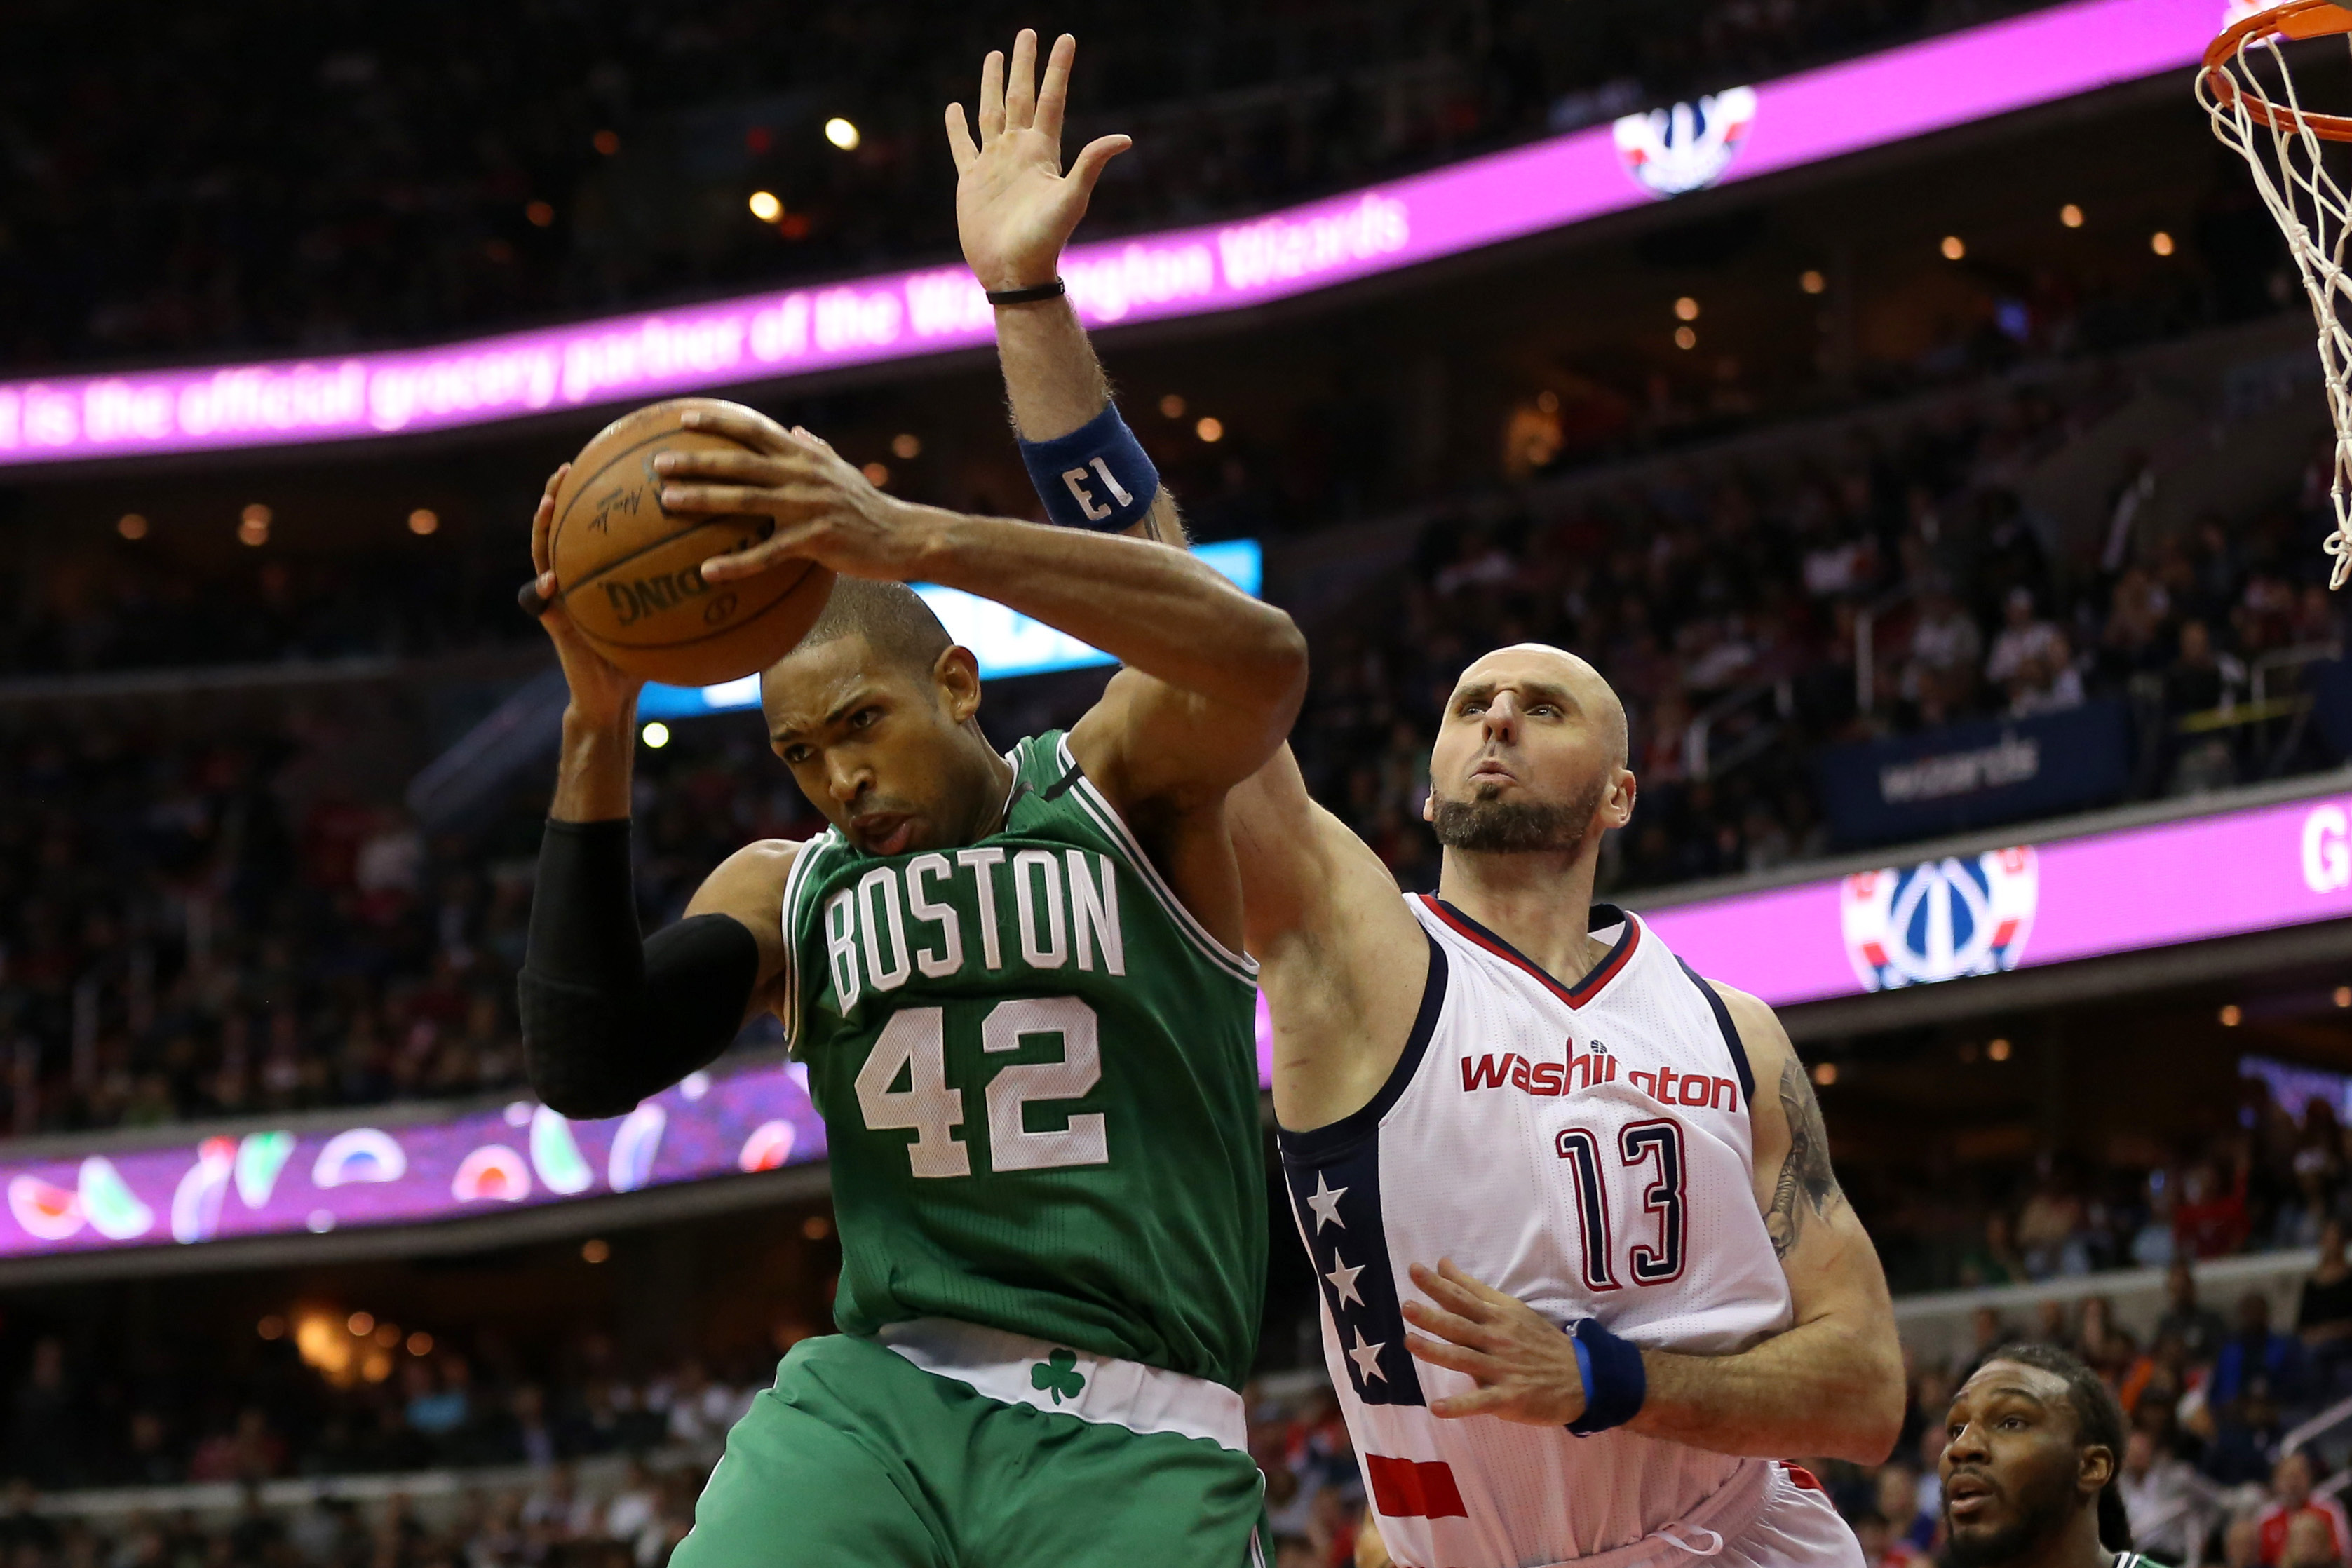 NBA Conference Semi-Finals, Game 7: Wizards vs Celtics